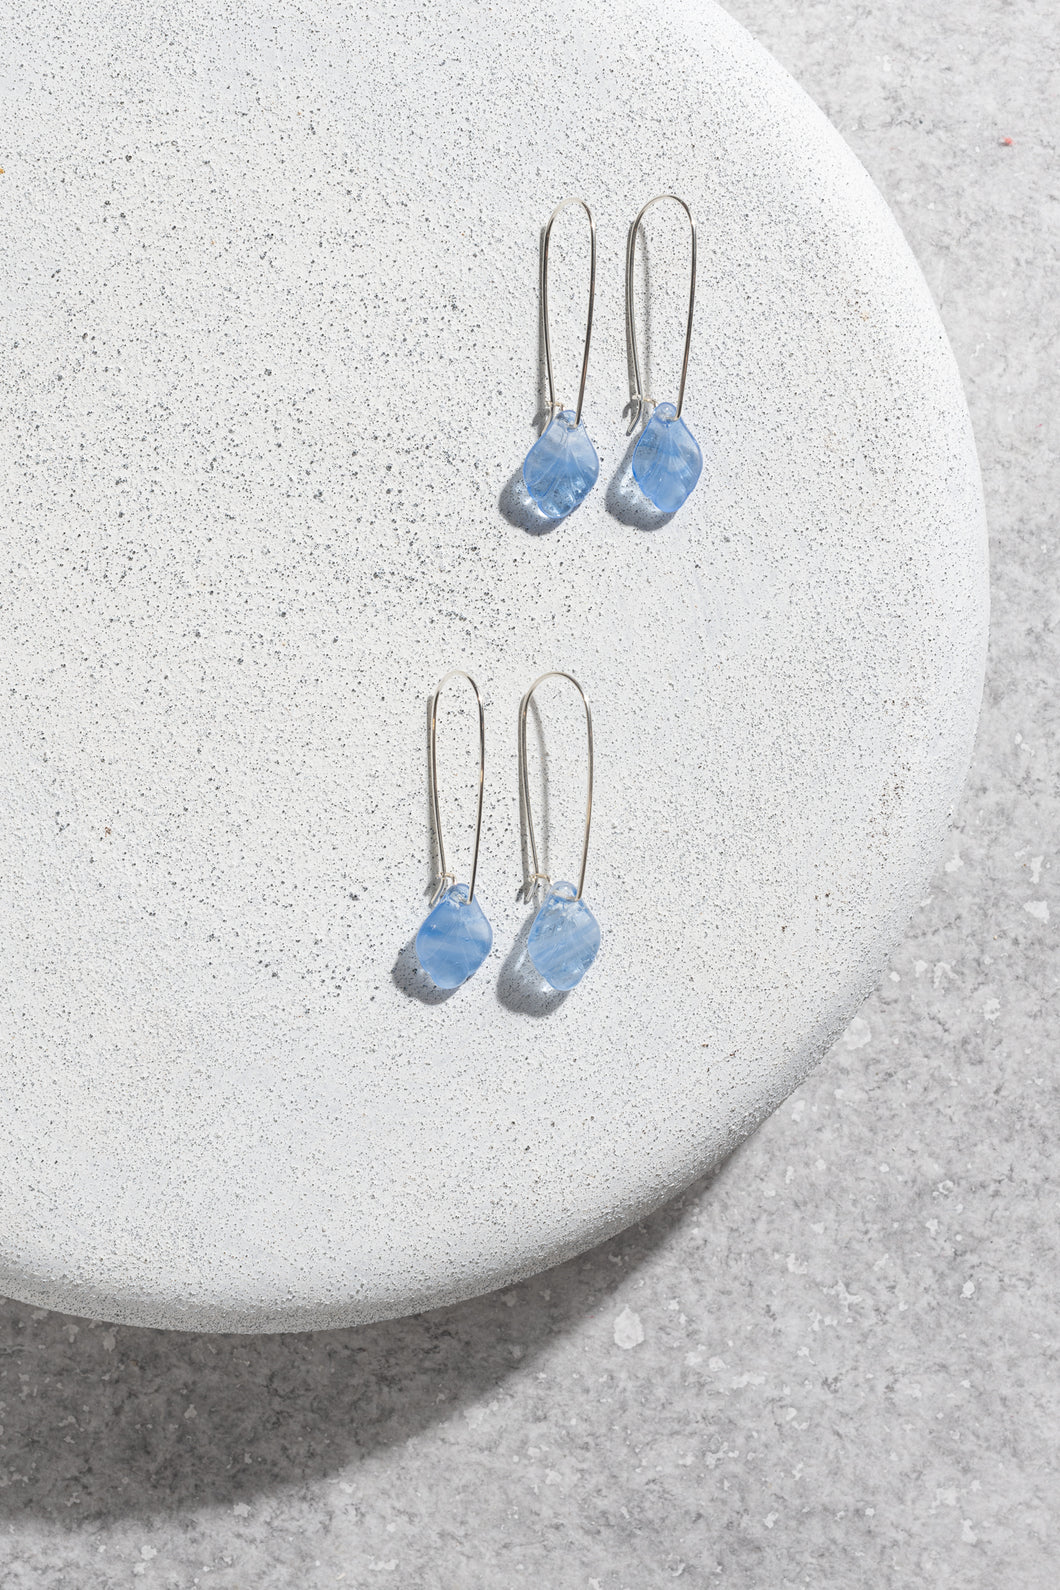 1940s Czechoslovakian vintage blue glass earrings